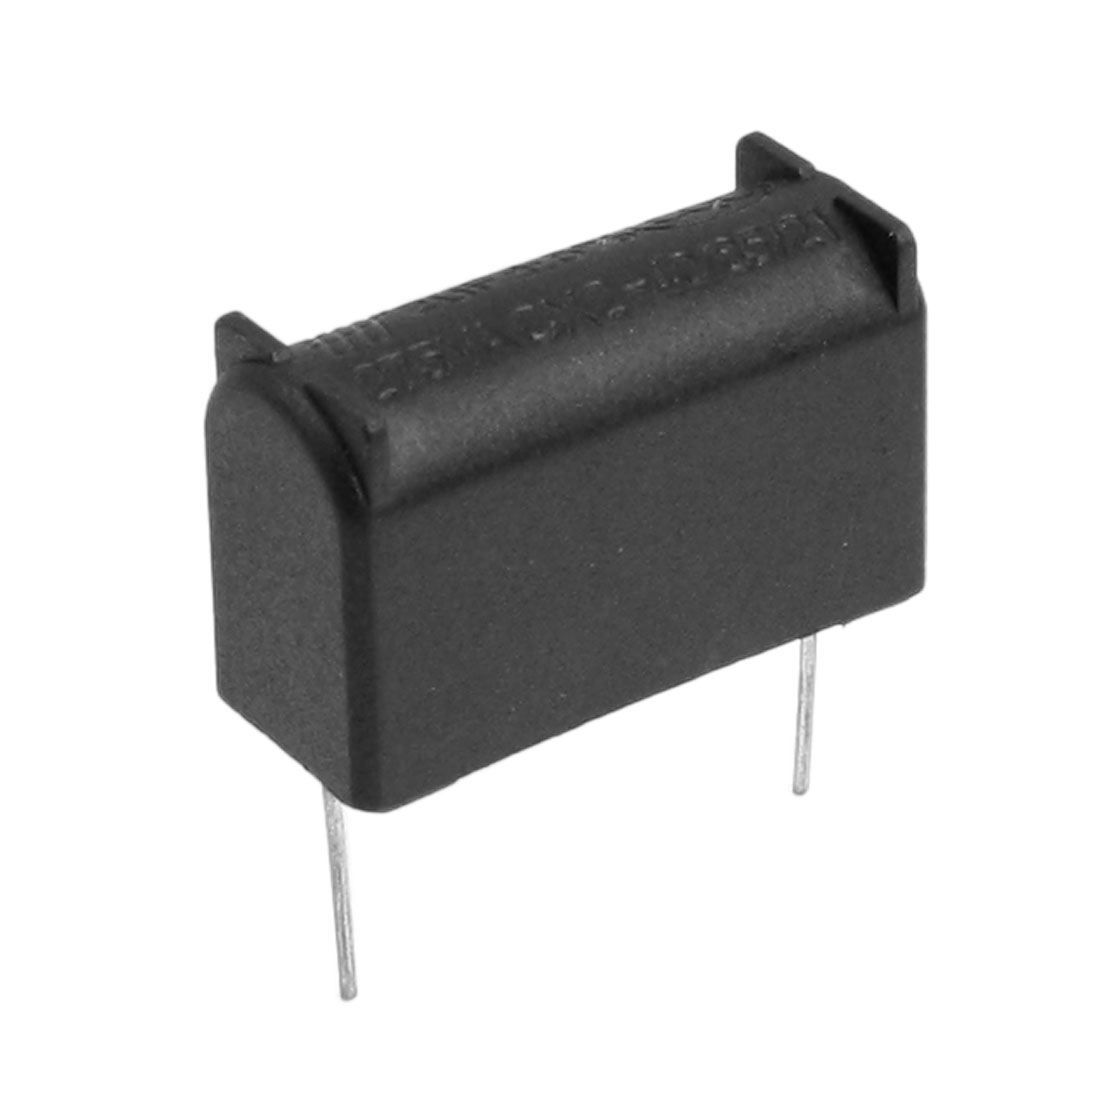 275VAC 2uF Black Plastic Shell Polypropylene Film Capacitor for Induction Cooker